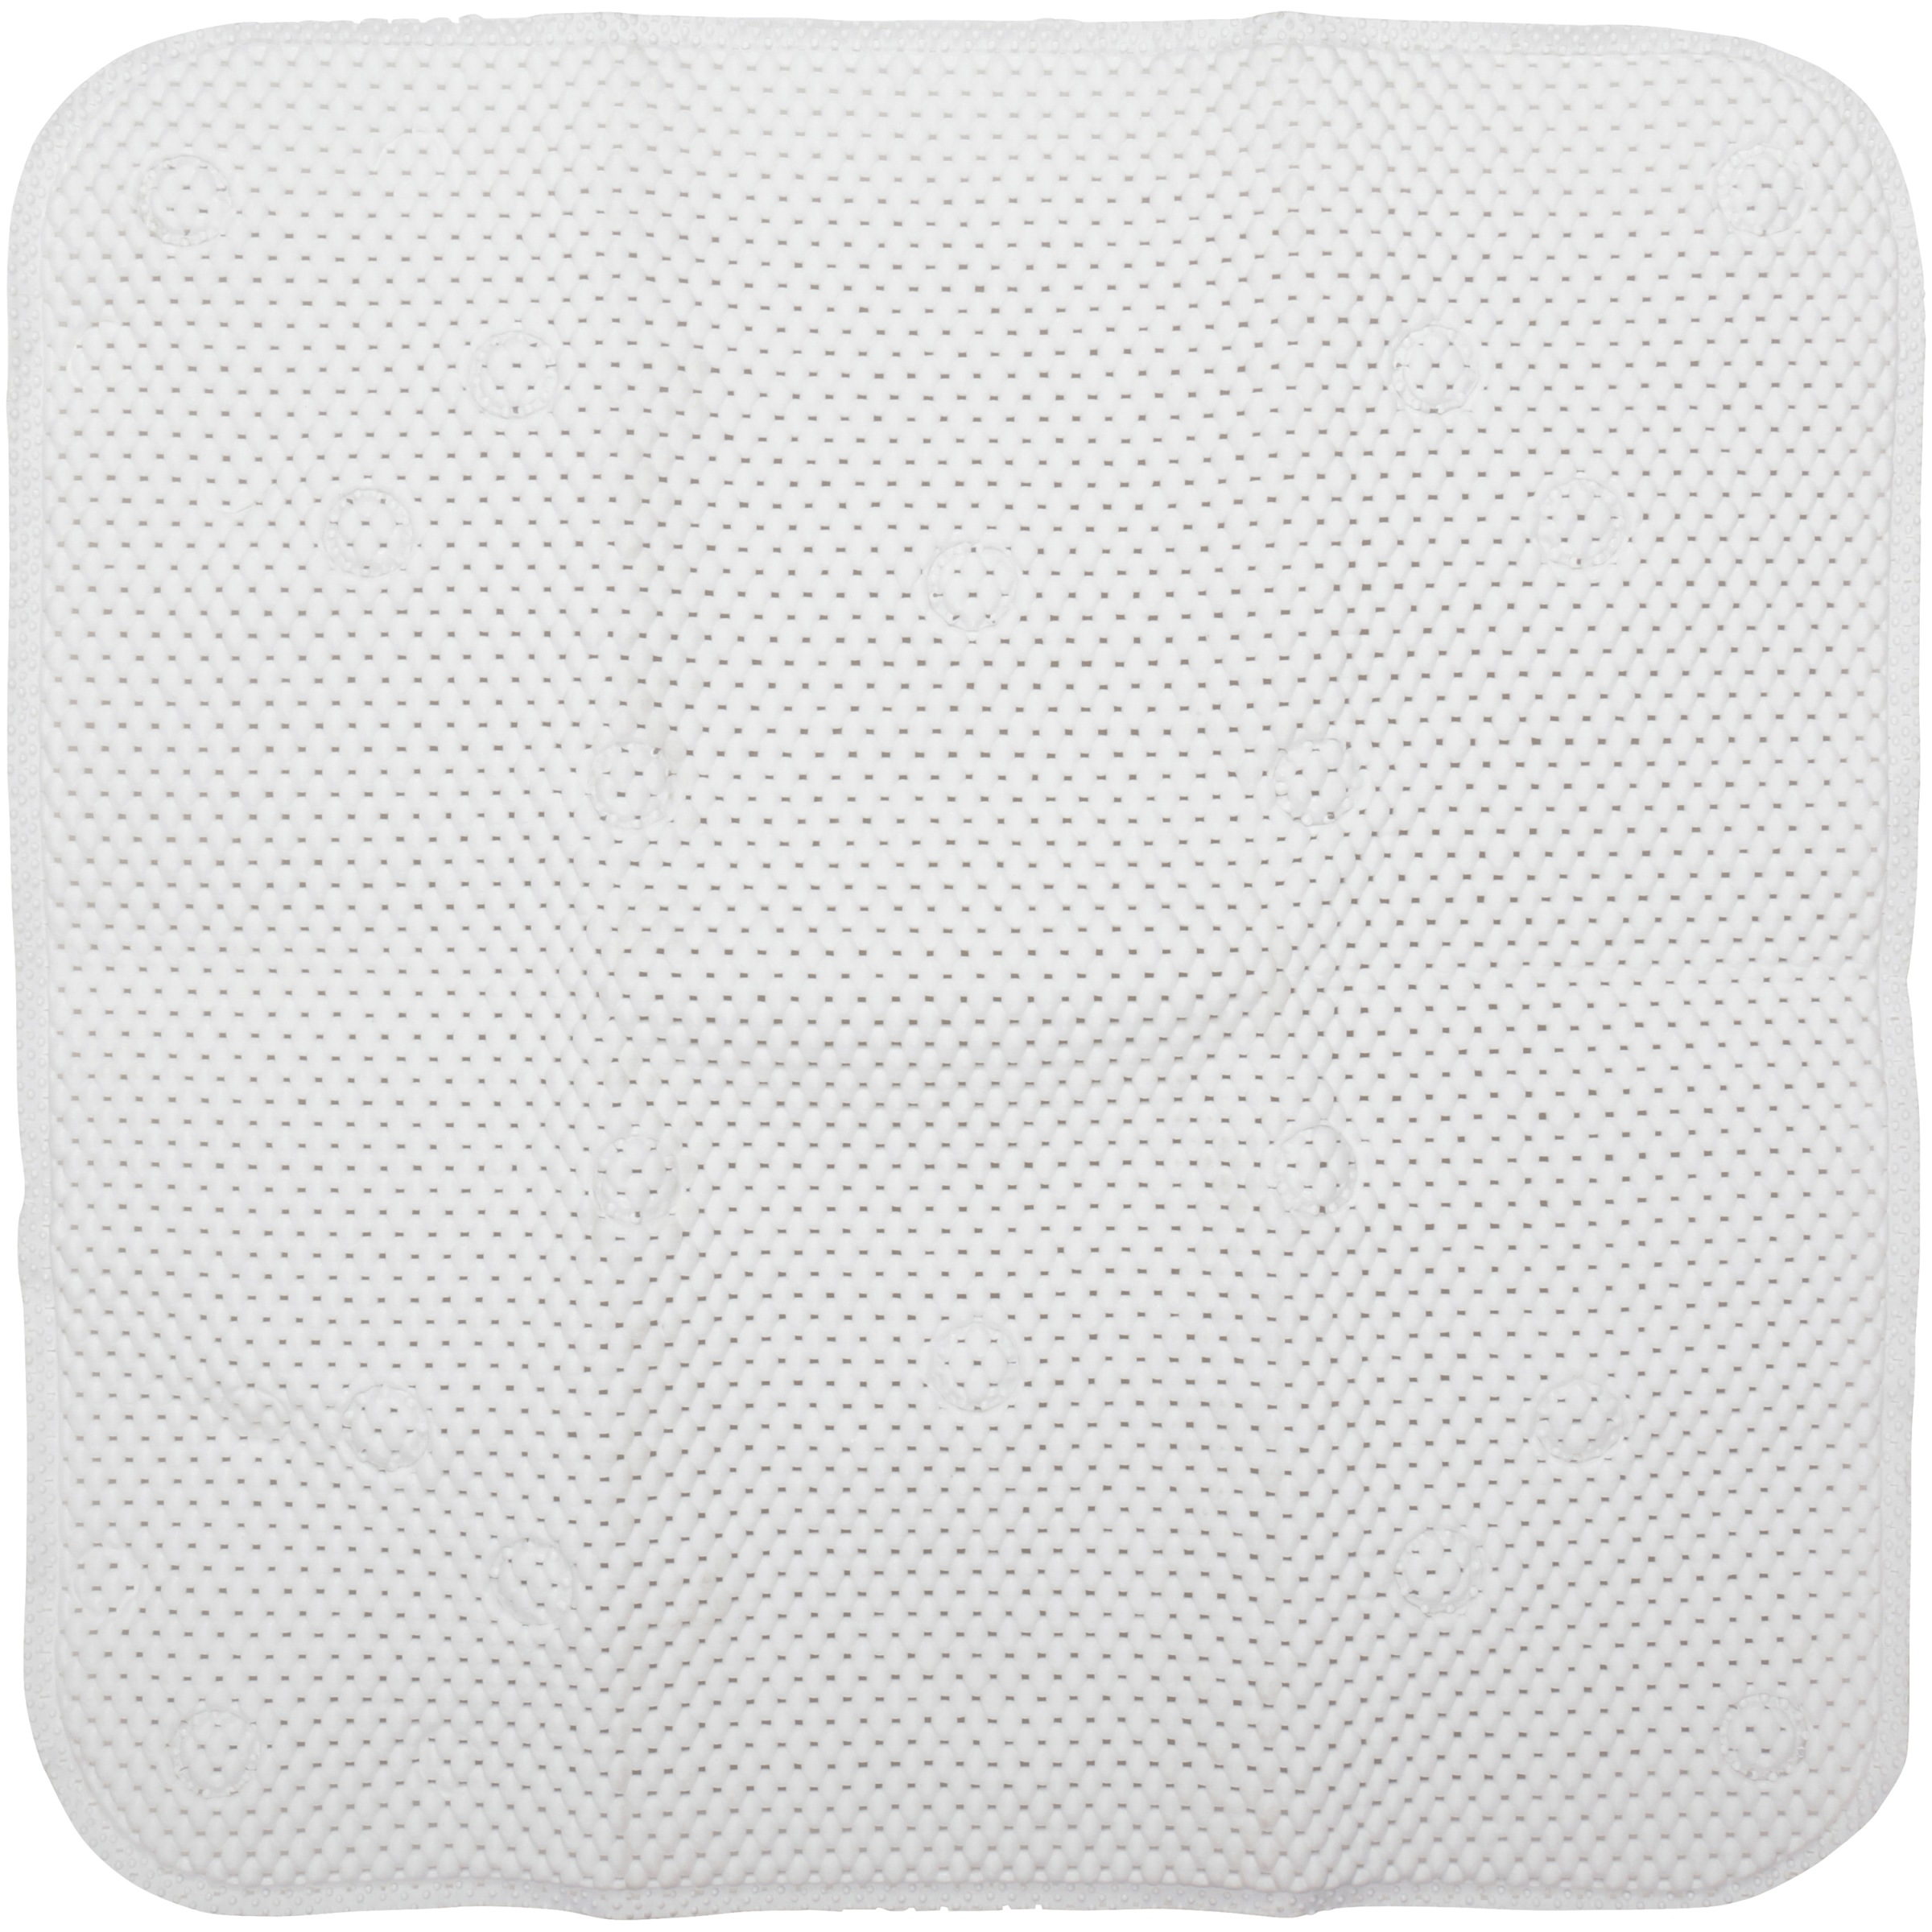 Con-Tact® Decorative Grip White Shower Mat Carded Pack